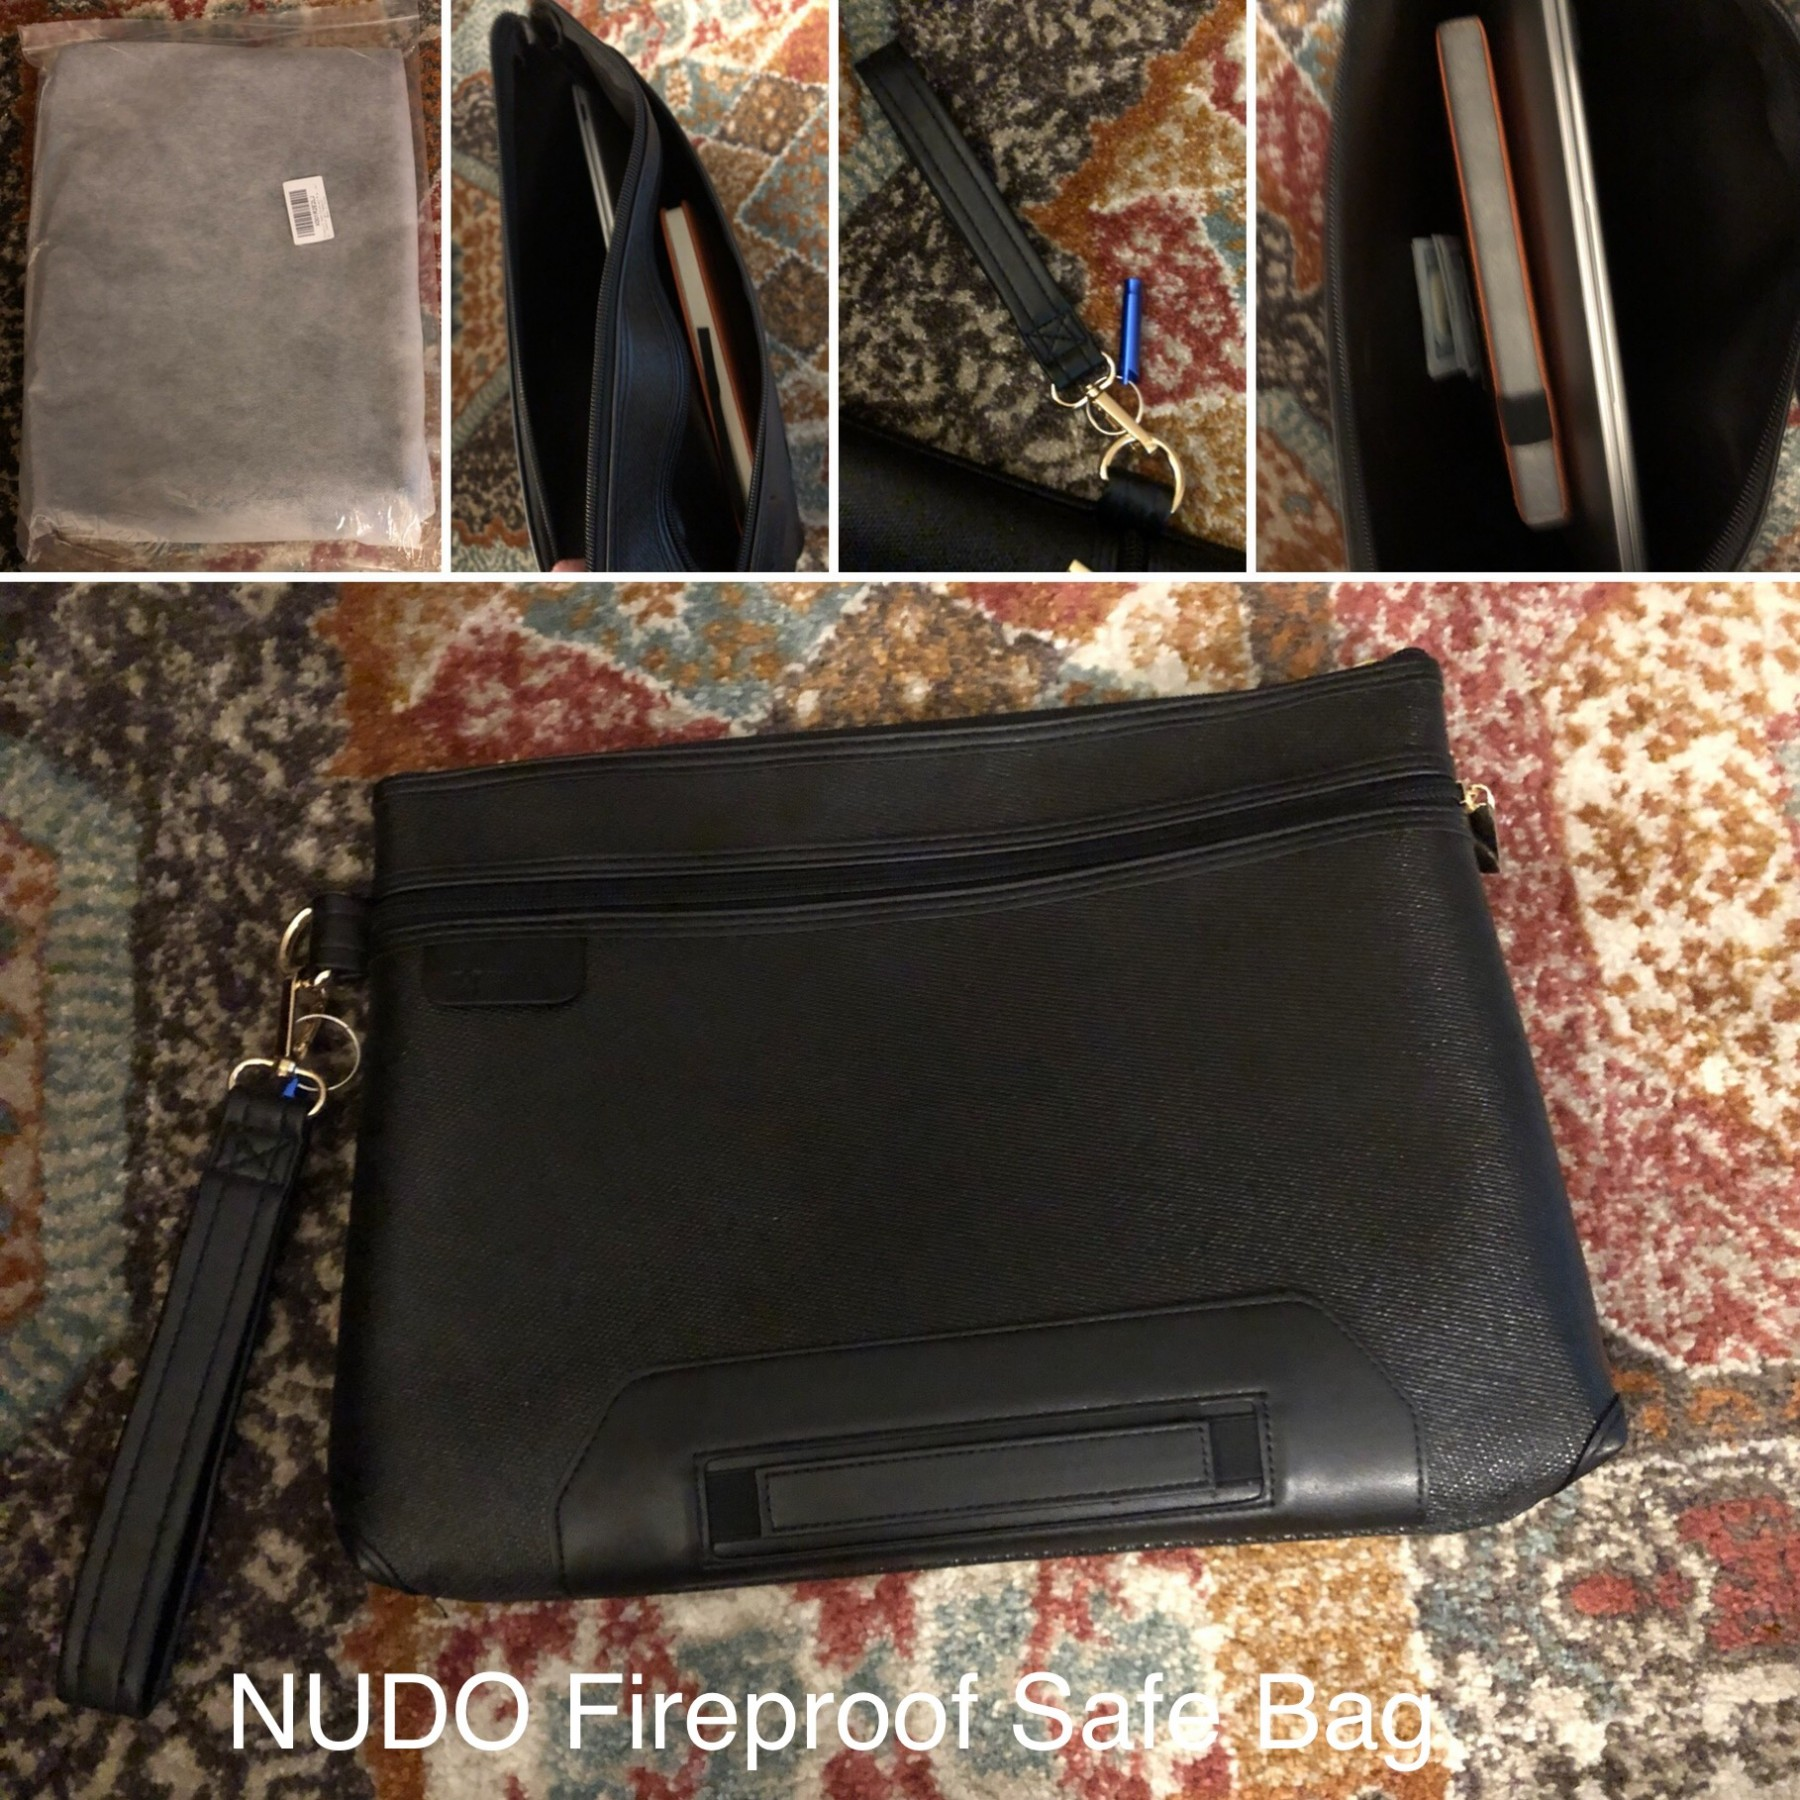 NUDO Fireproof Safe Bag is Both Attractive and STRONG!